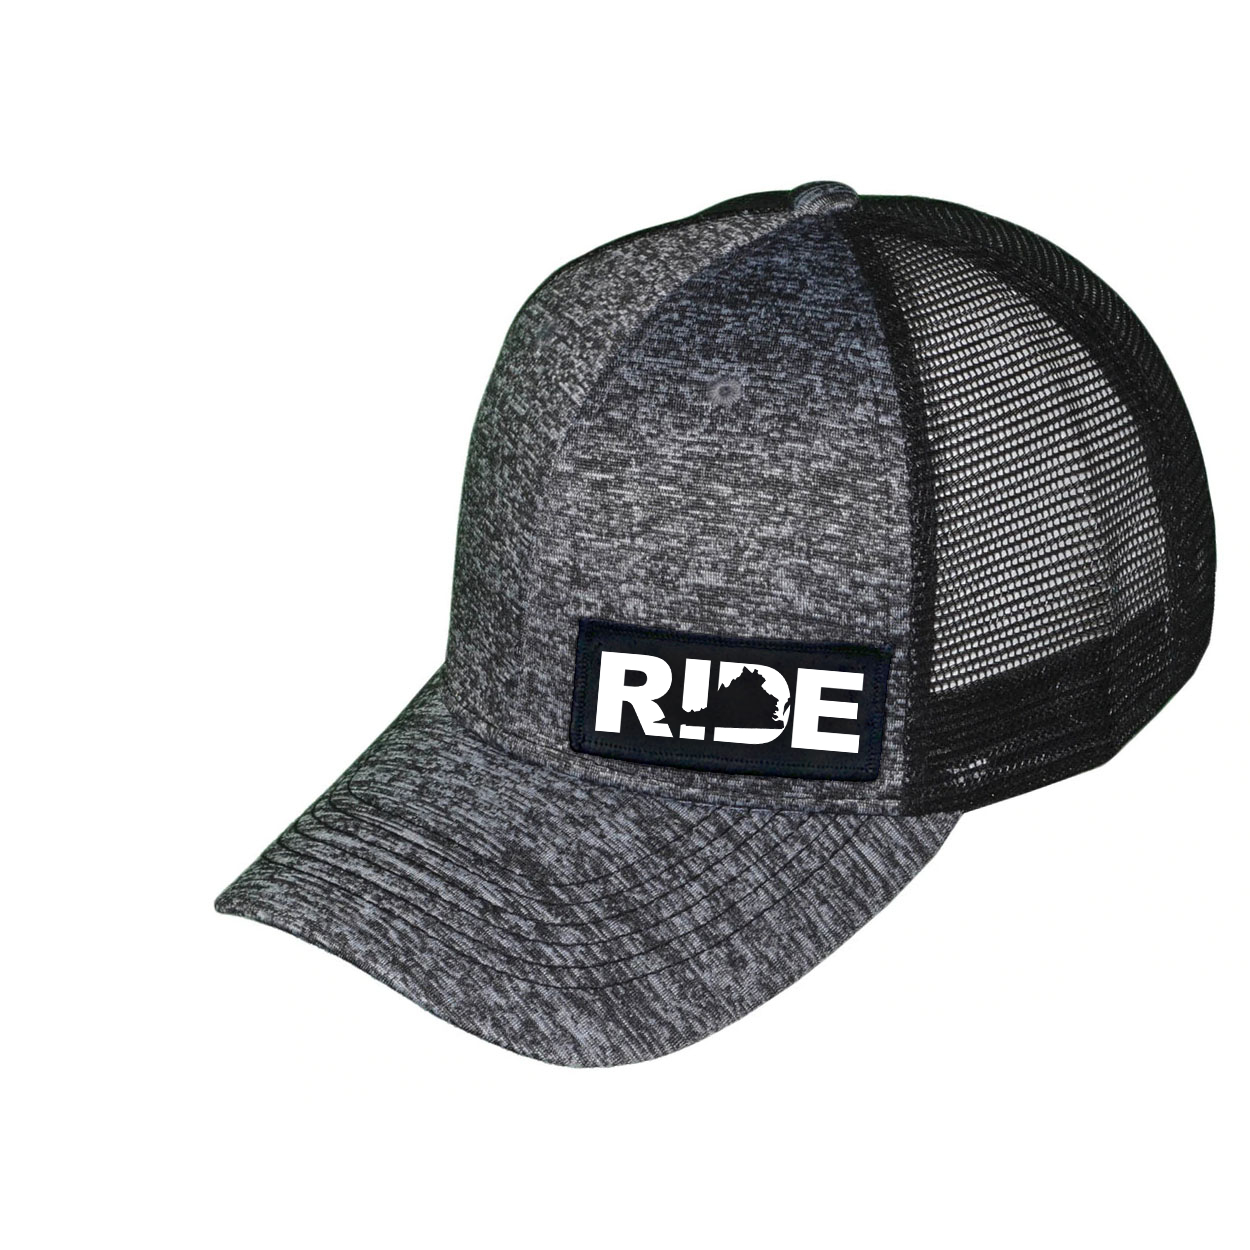 Ride Virginia Night Out Woven Patch Melange Snapback Trucker Hat Gray/Black (White Logo)